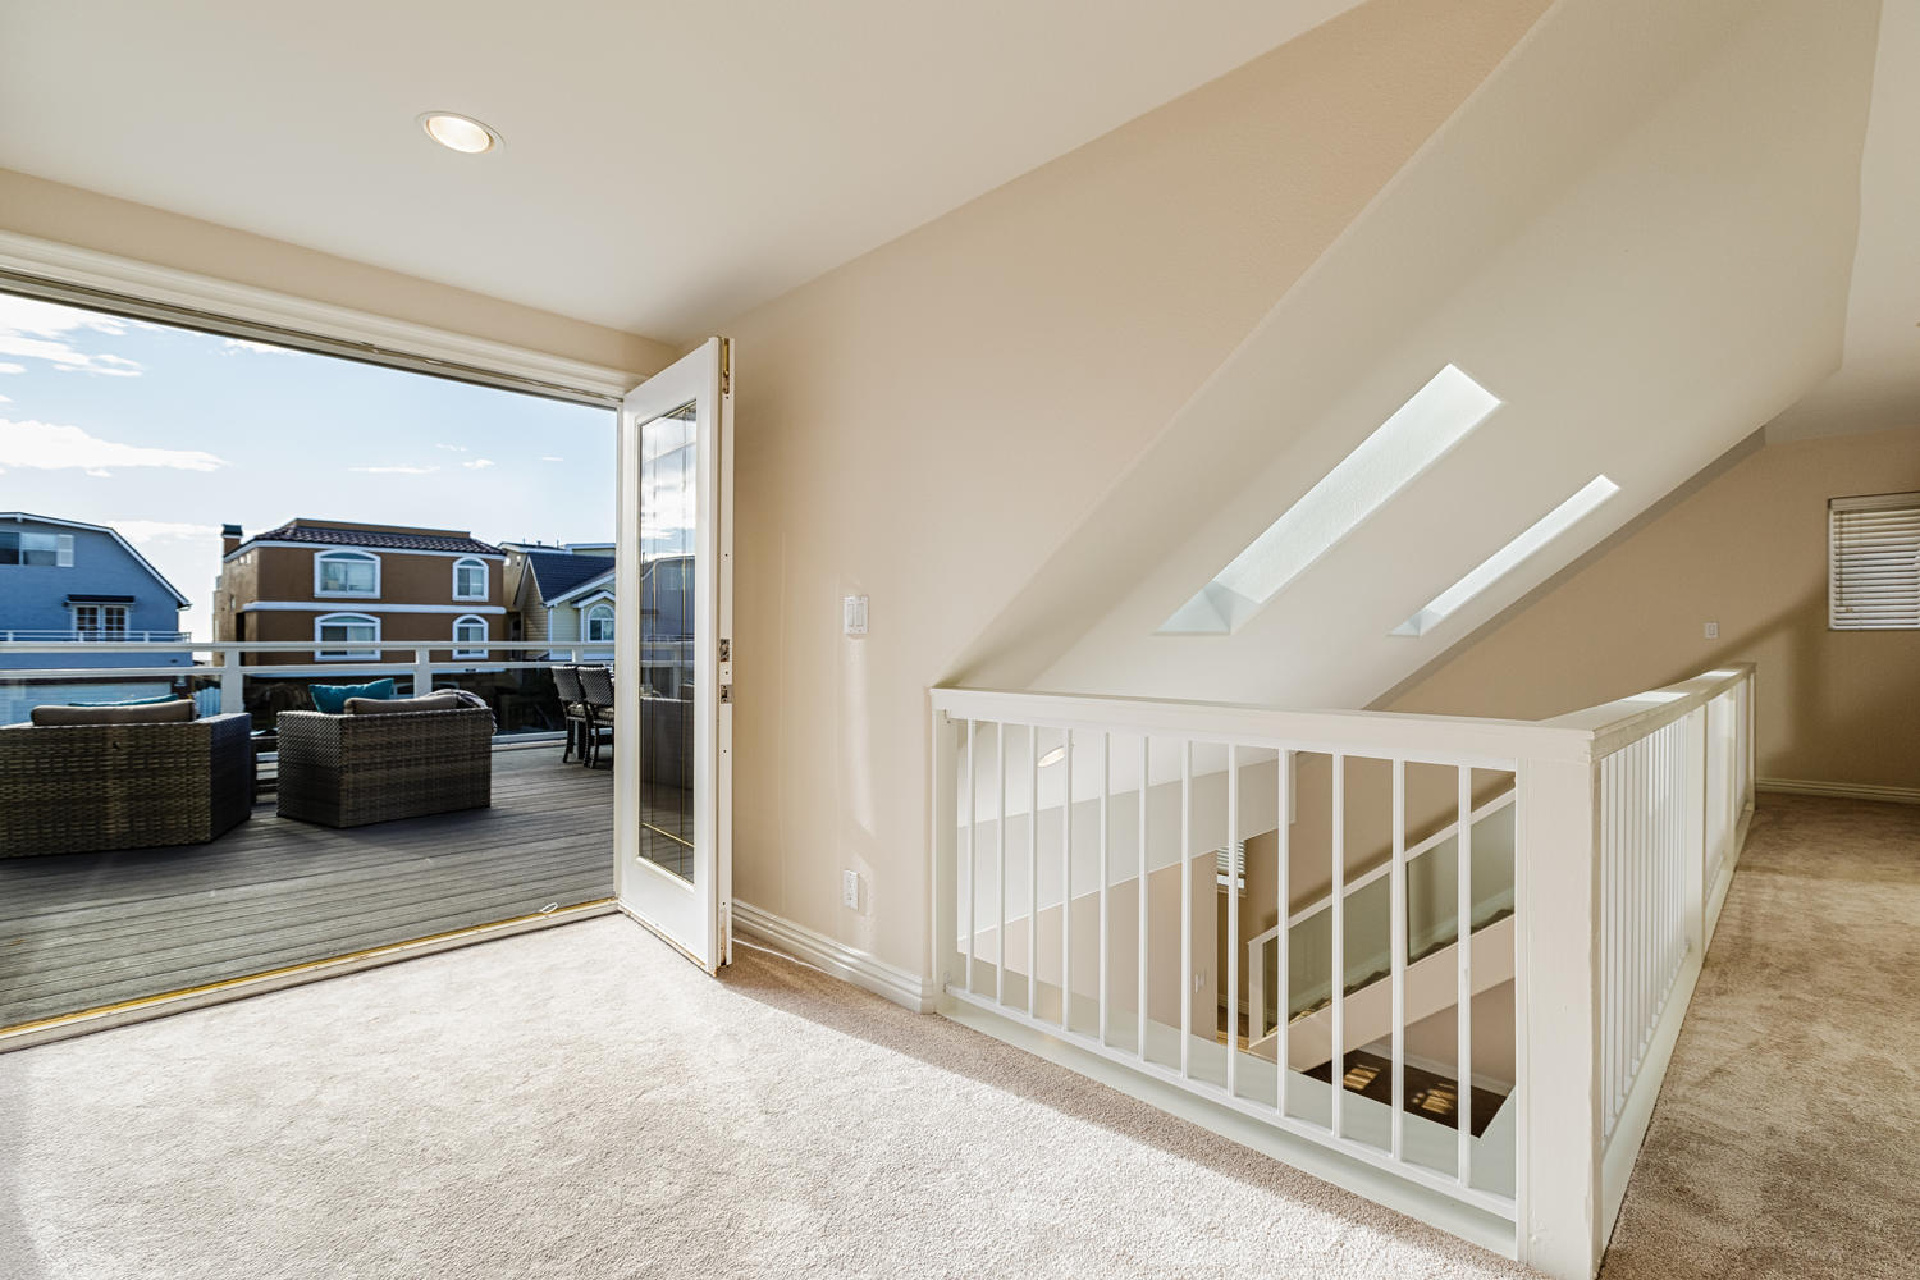 http://www.addressrealestate.com/media/images/blogs/38/2/b_15-1408-ocean-dr-oxnard-ca-93035-mls-size-009-8-upstairs-to-balcony-1500x1000-72dpi.jpg